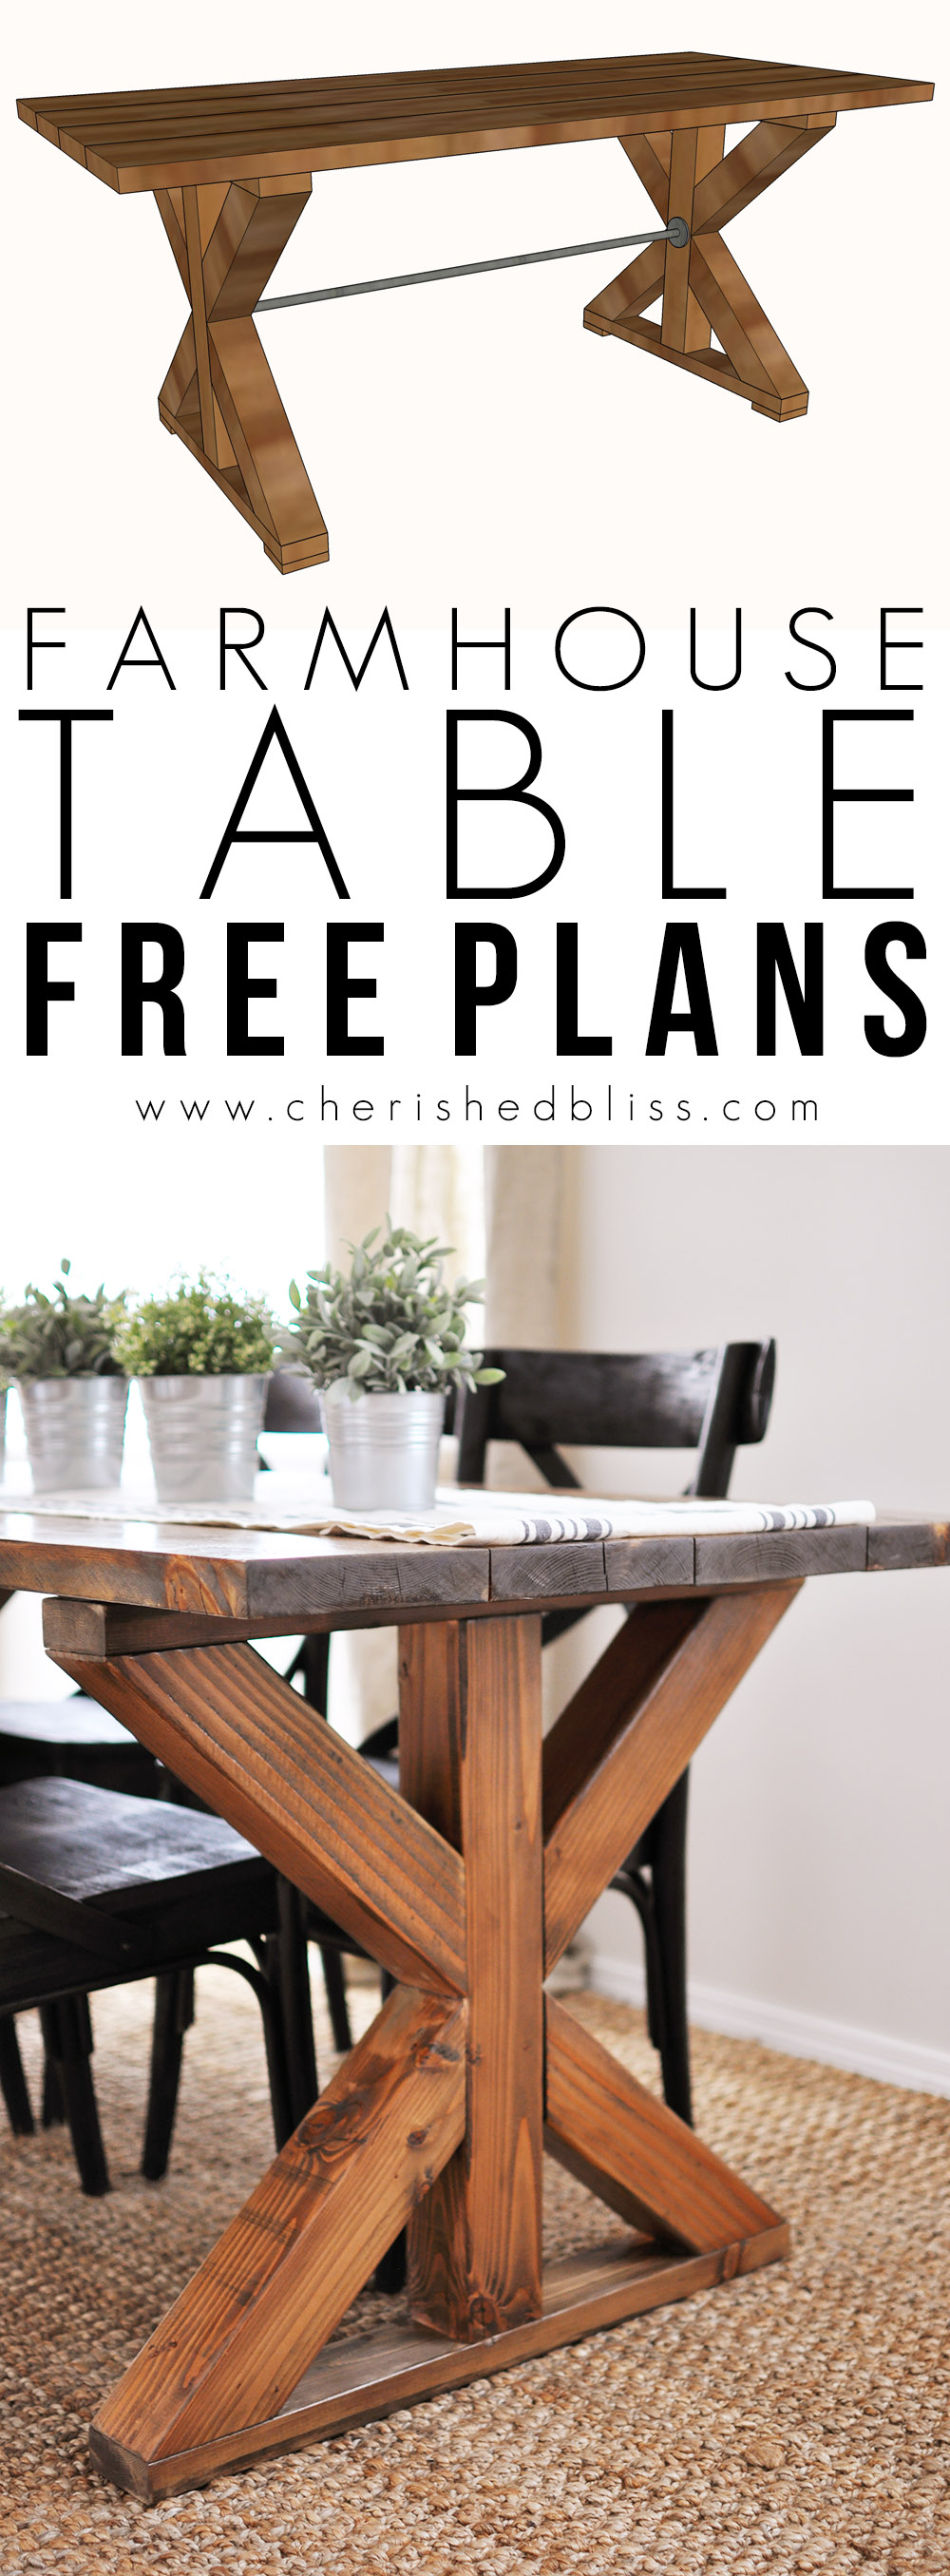 DIY Farm Table Build Plans and Makeover Ideas - Fox Hollow Cottage